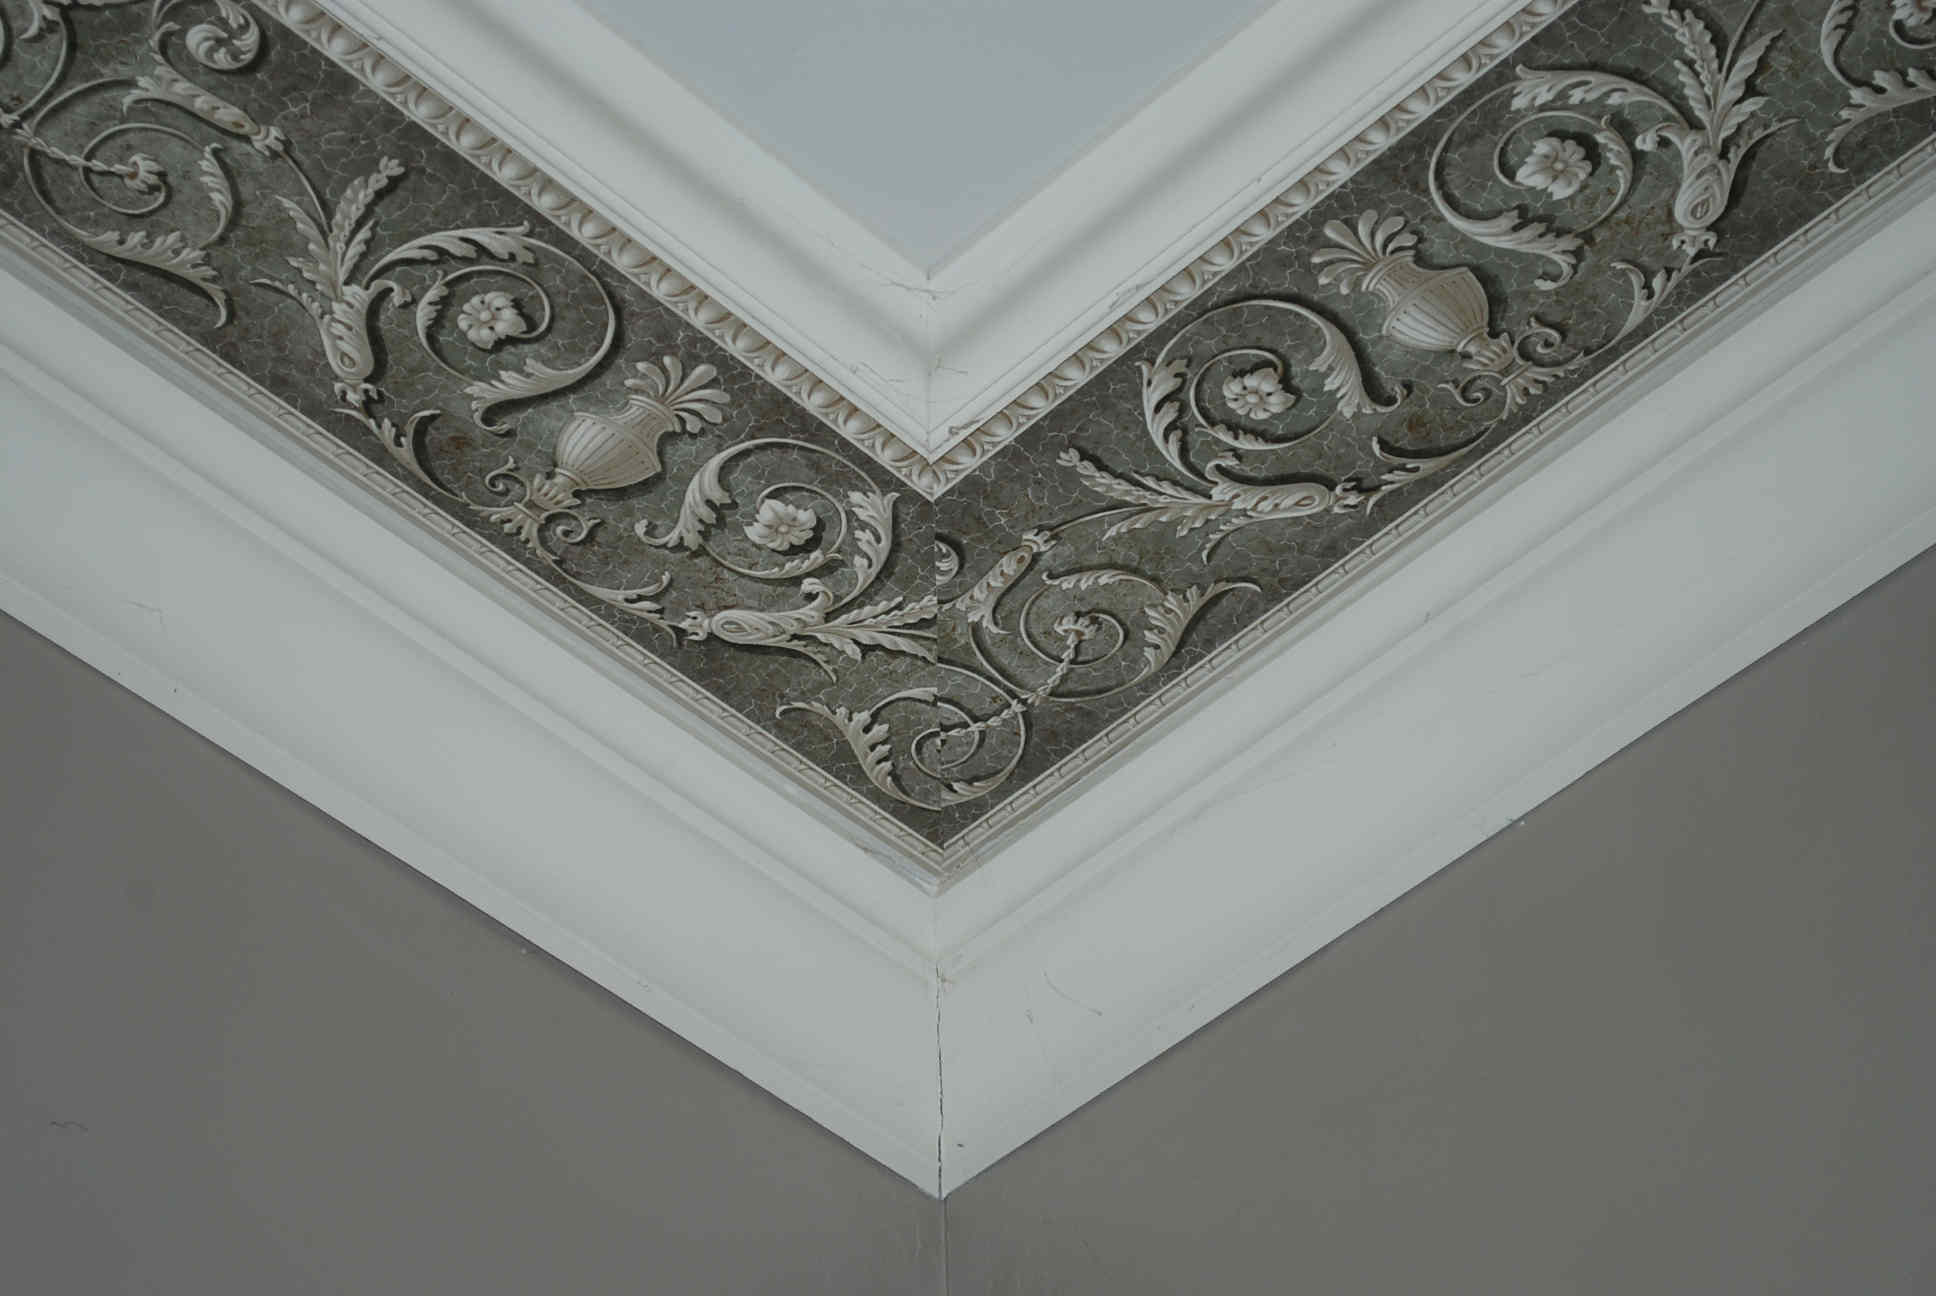 Wallpaper border on ceiling ICDCI Can Do Crafts Pinterest 1936x1296